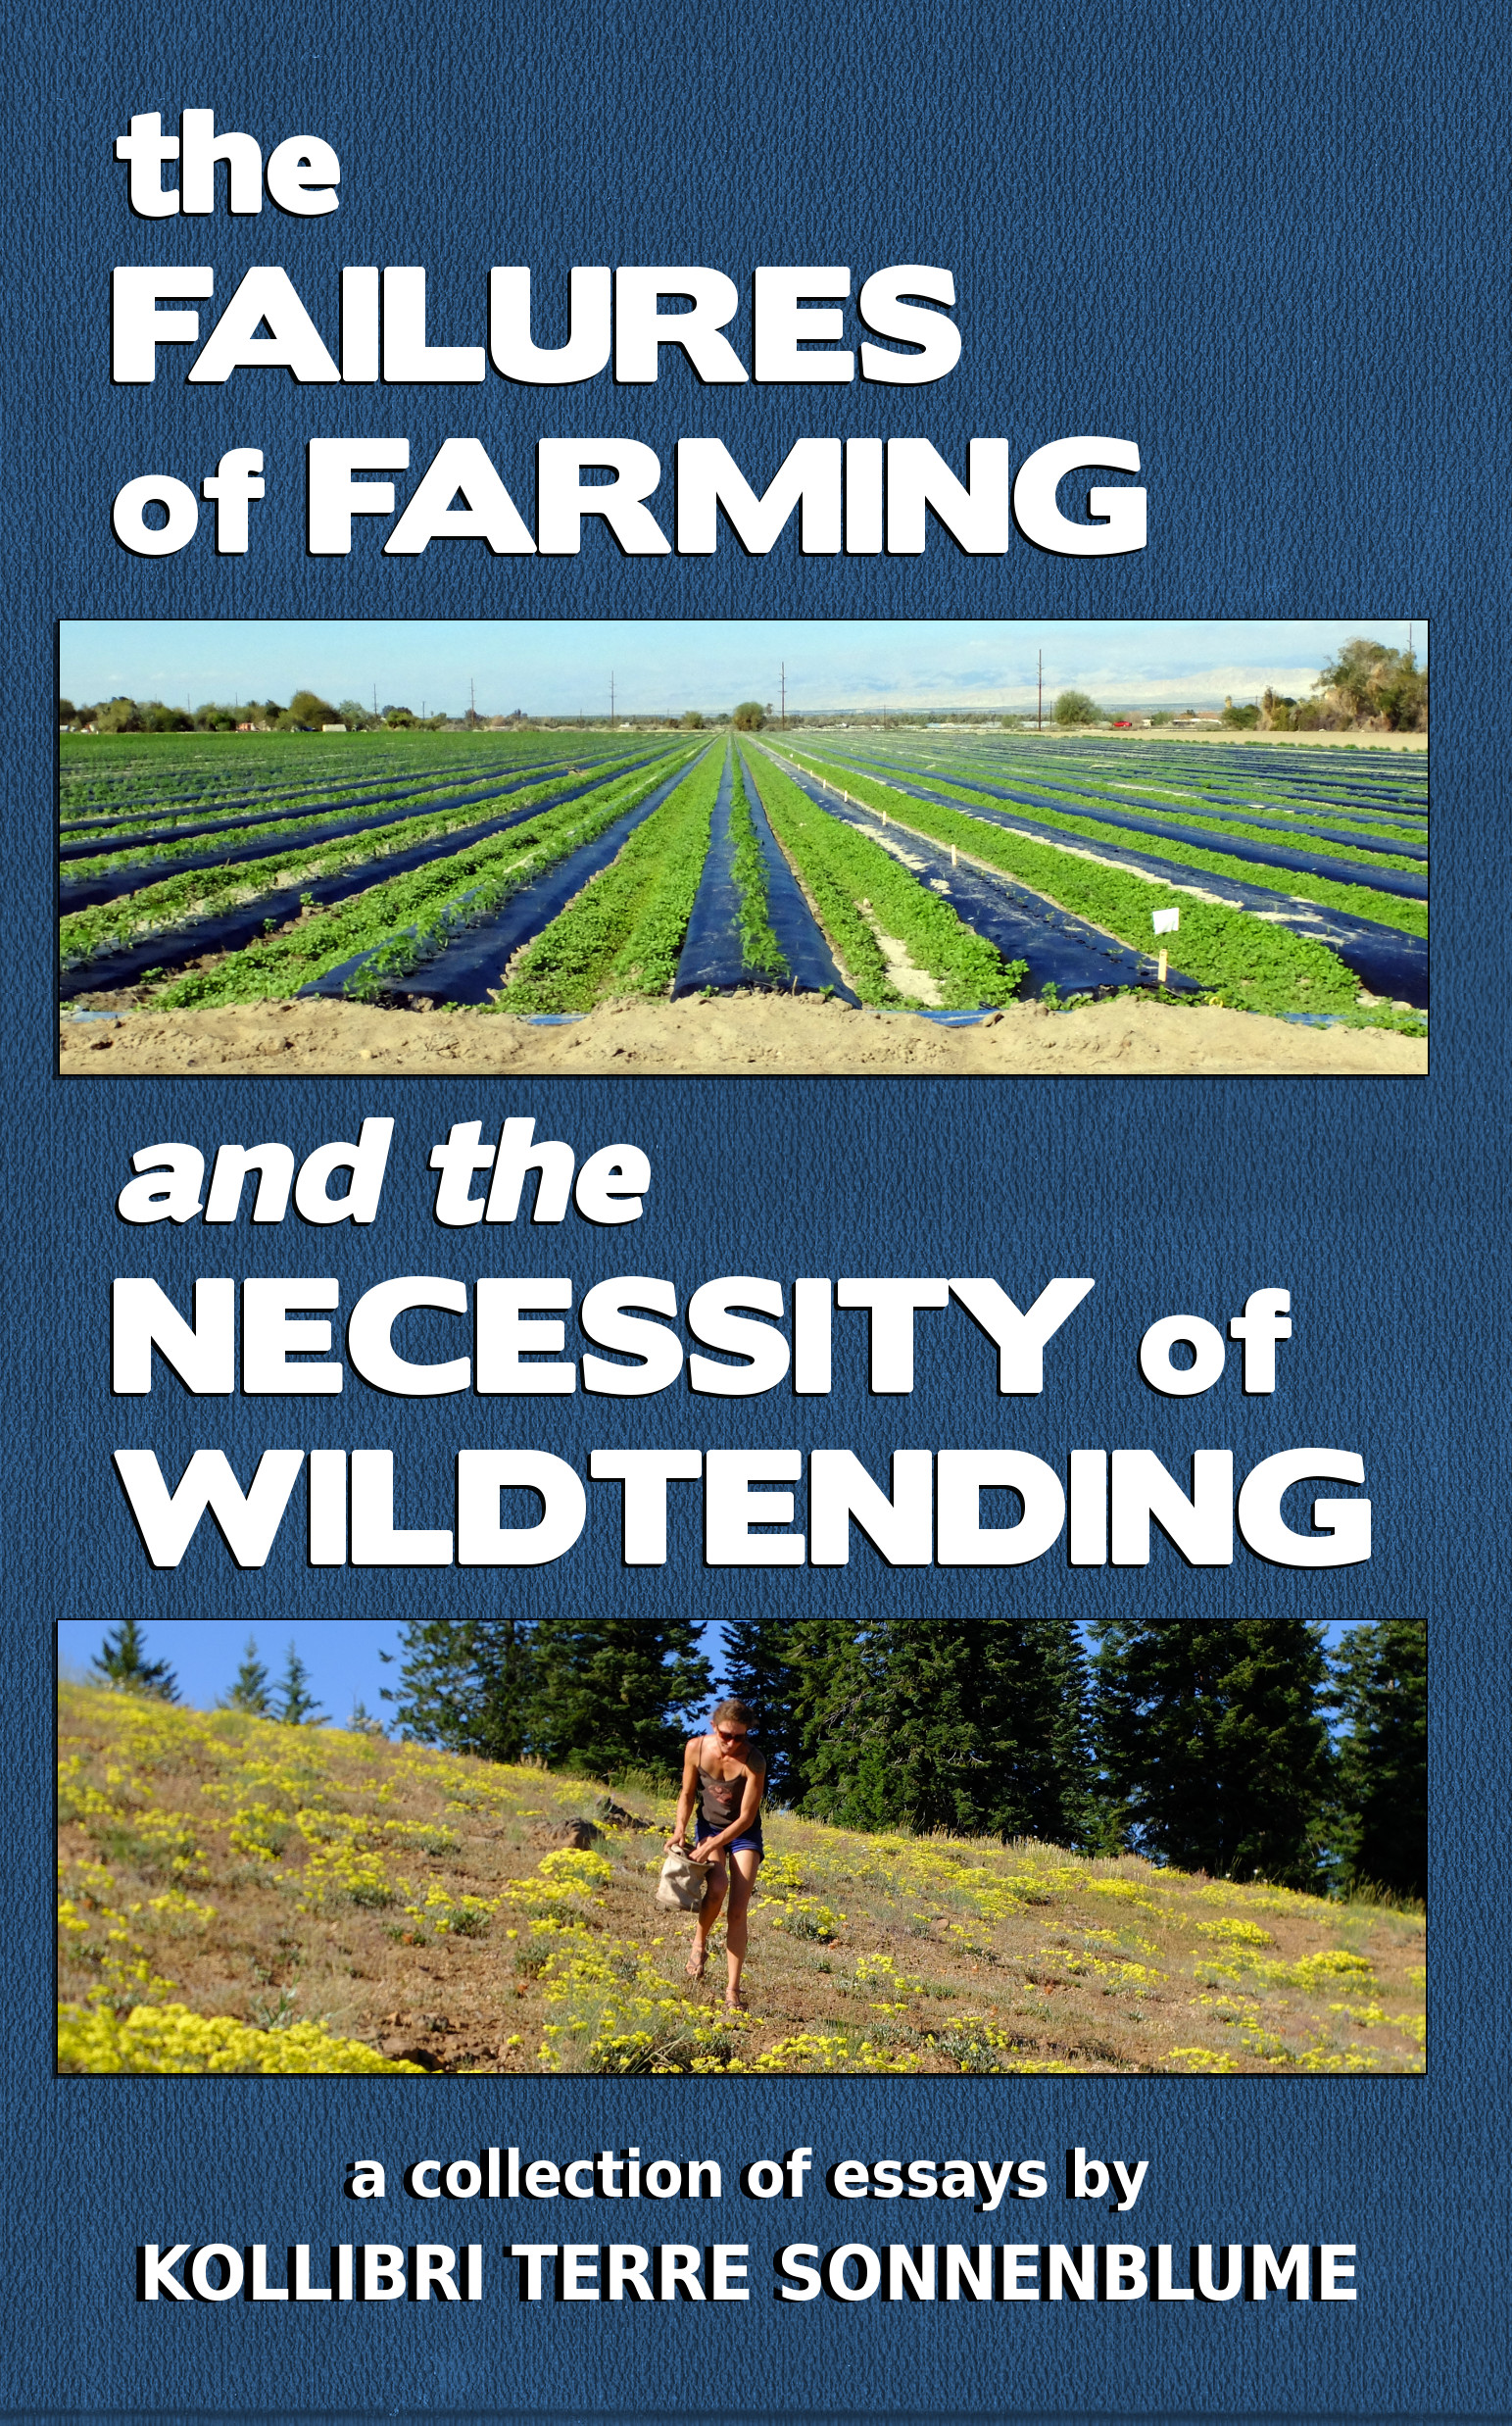 The Failures of Farming & the Necessity of Wildtending